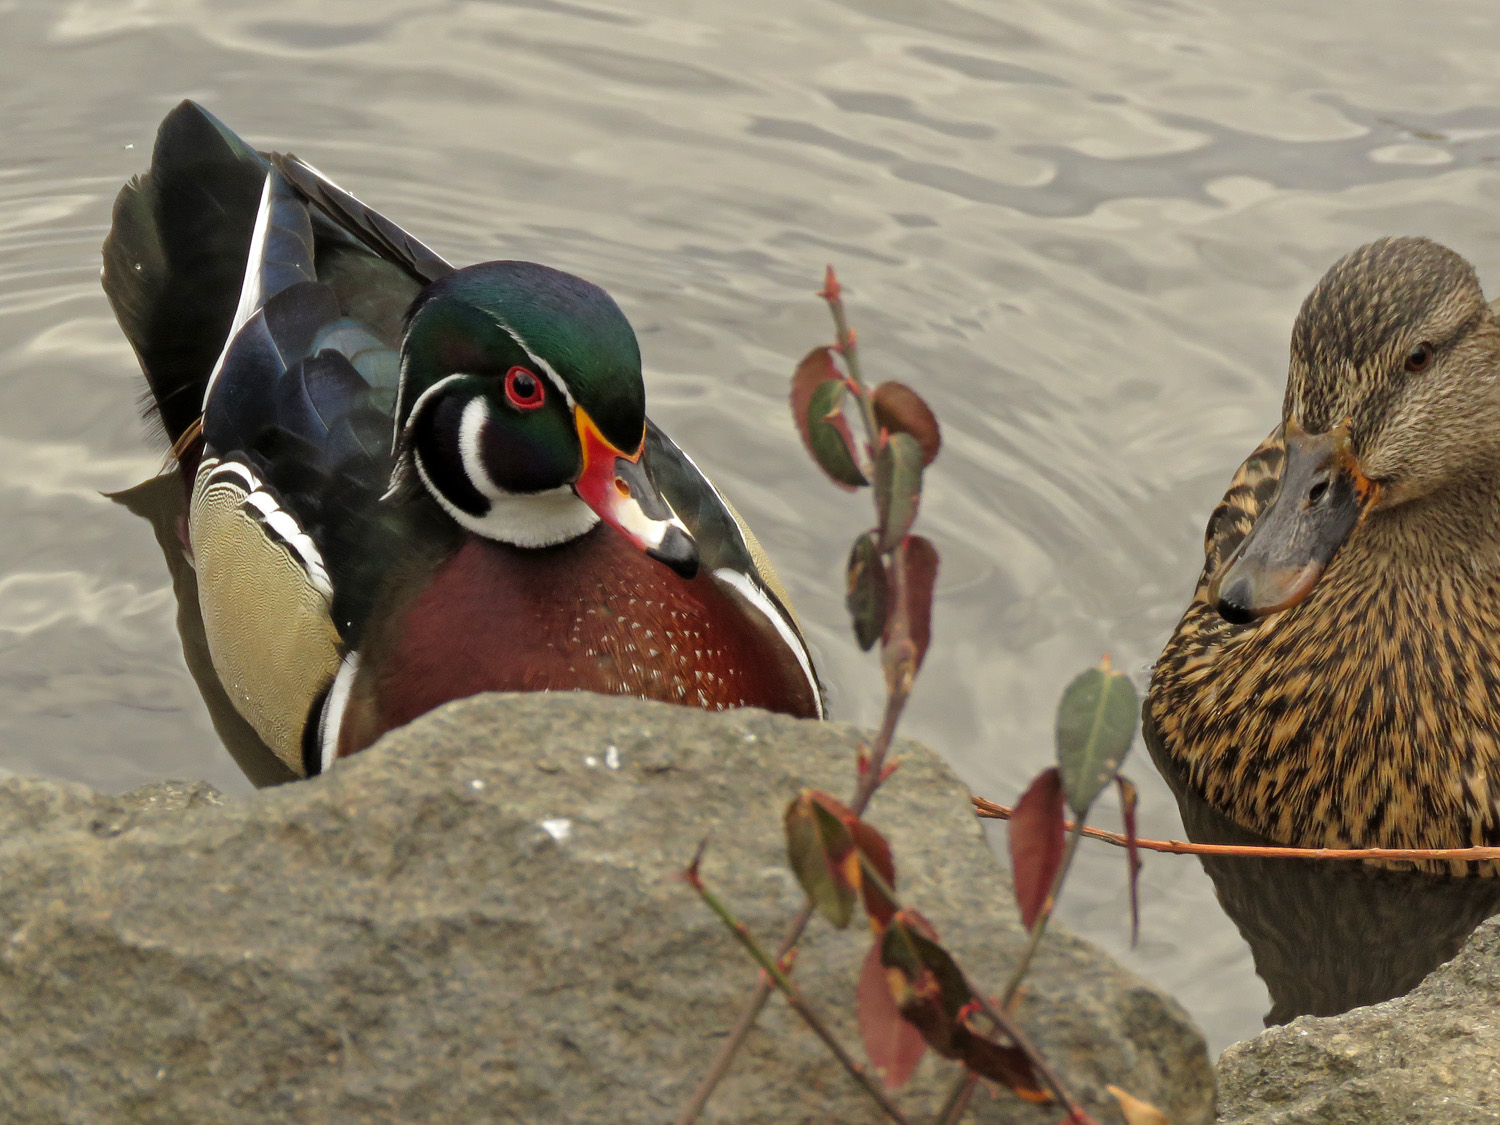 Woody and his mallard girlfriend, the Pond, March 18, 2019